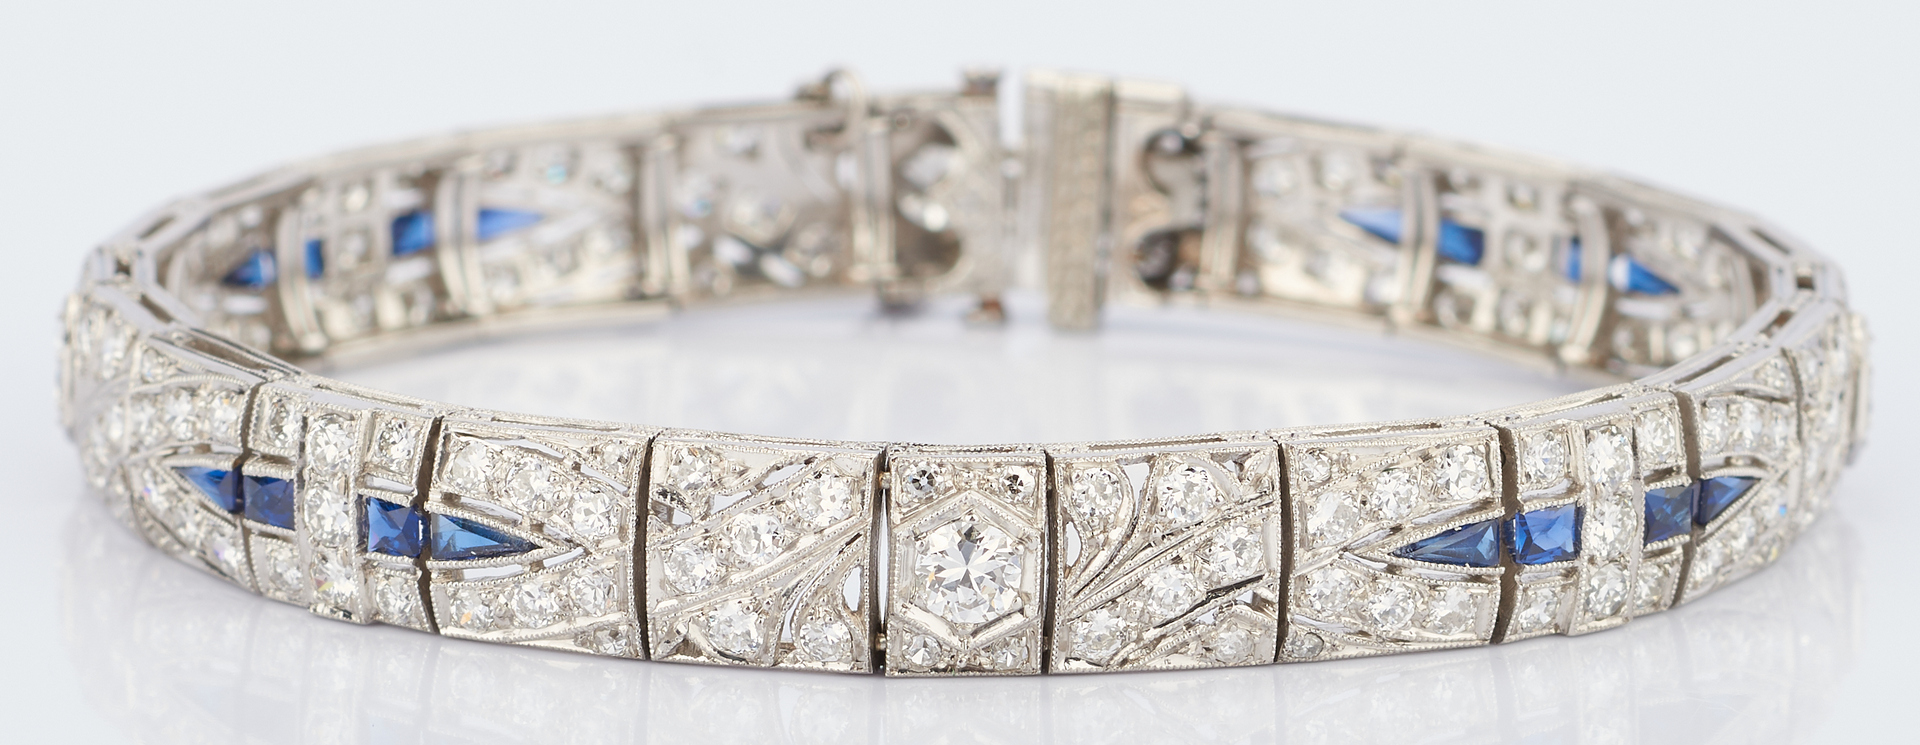 Lot 223: Art Deco Platinum Diamond Sapphire Bracelet